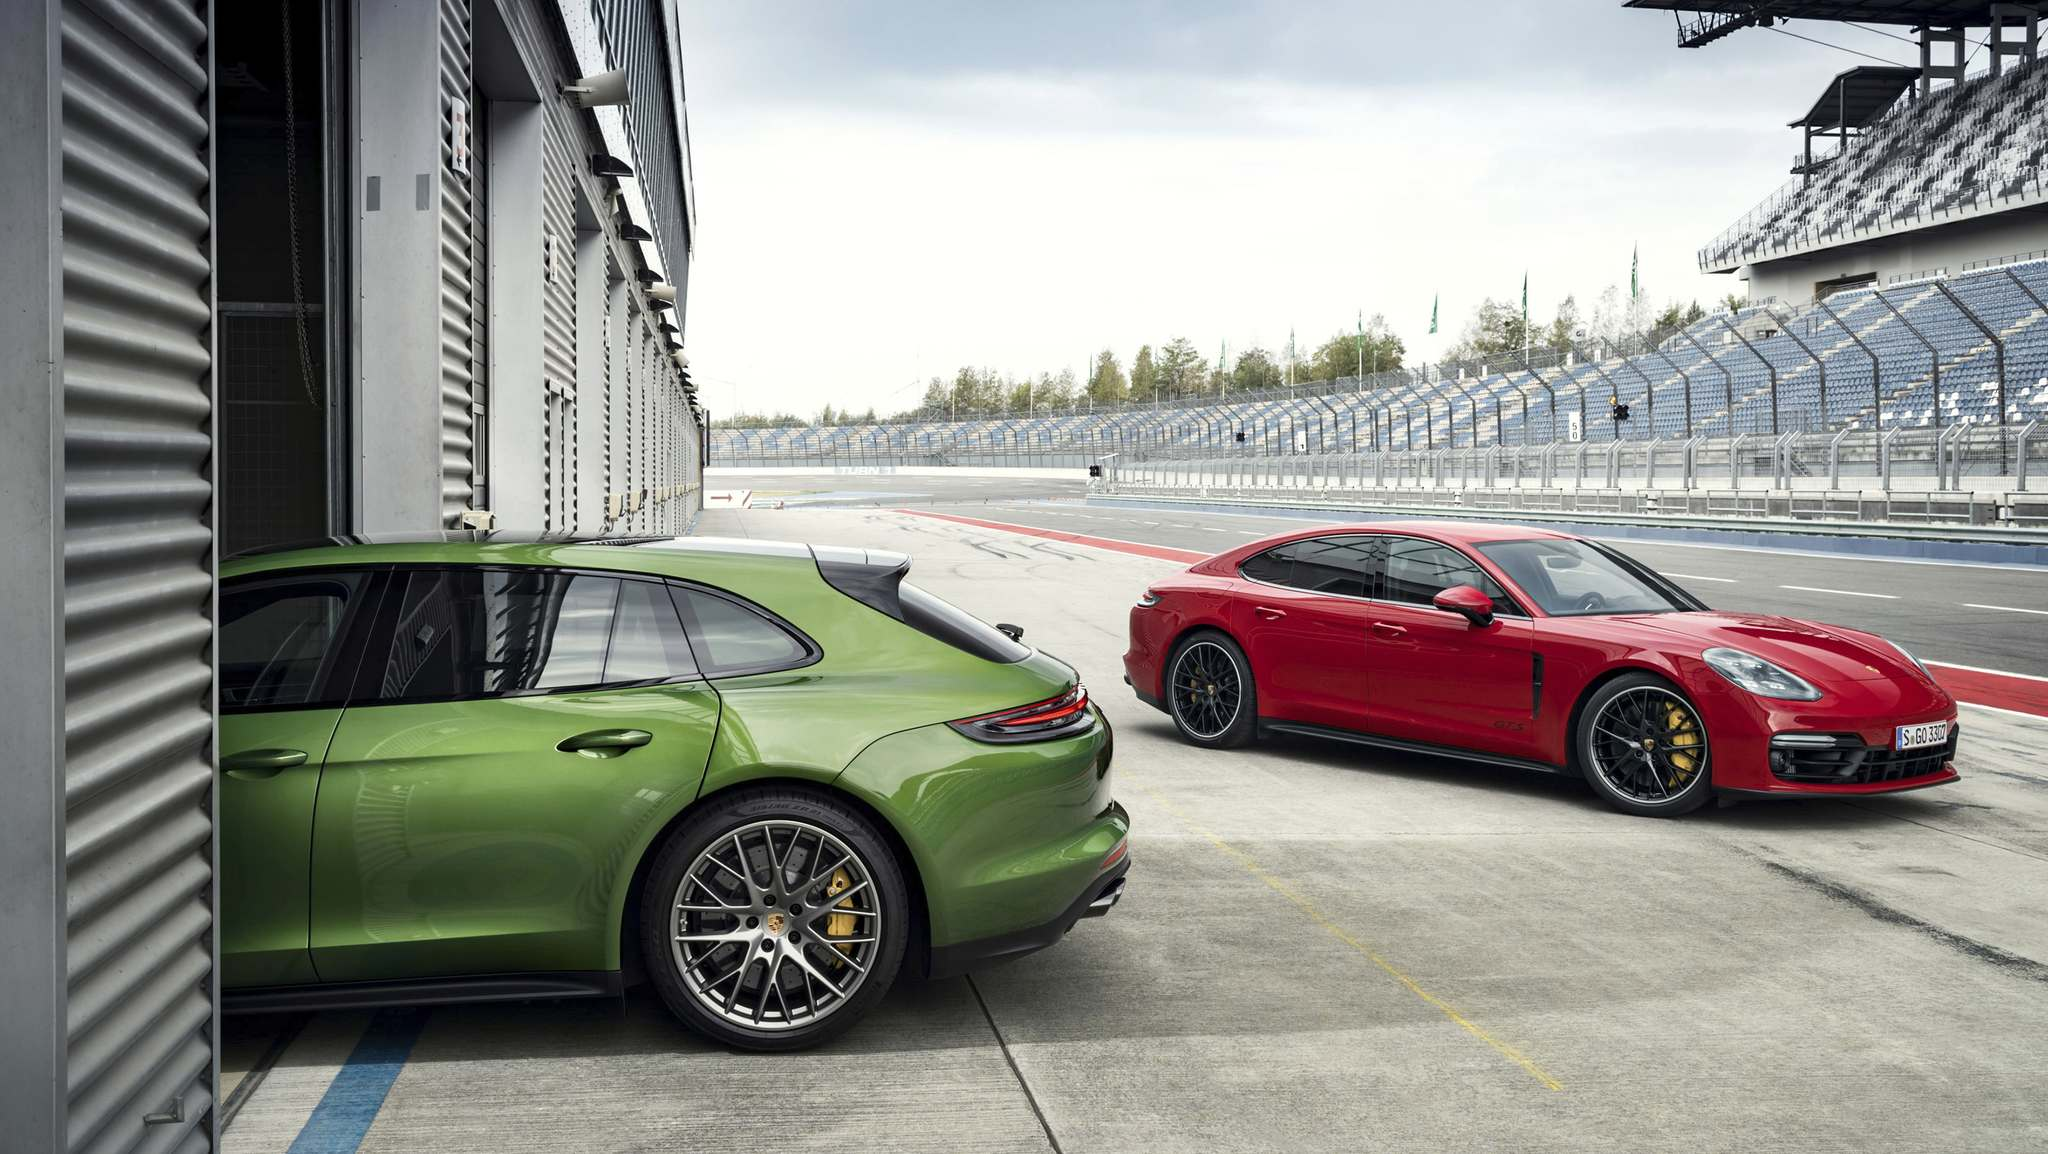 Photos suppliedPorsche Cars Canada spokesman Patrick Saint-Pierre says of the Panamera GTS: 'We think this vehicle is for someone who already appreciates what the brand is about and is looking for a little bit more.'